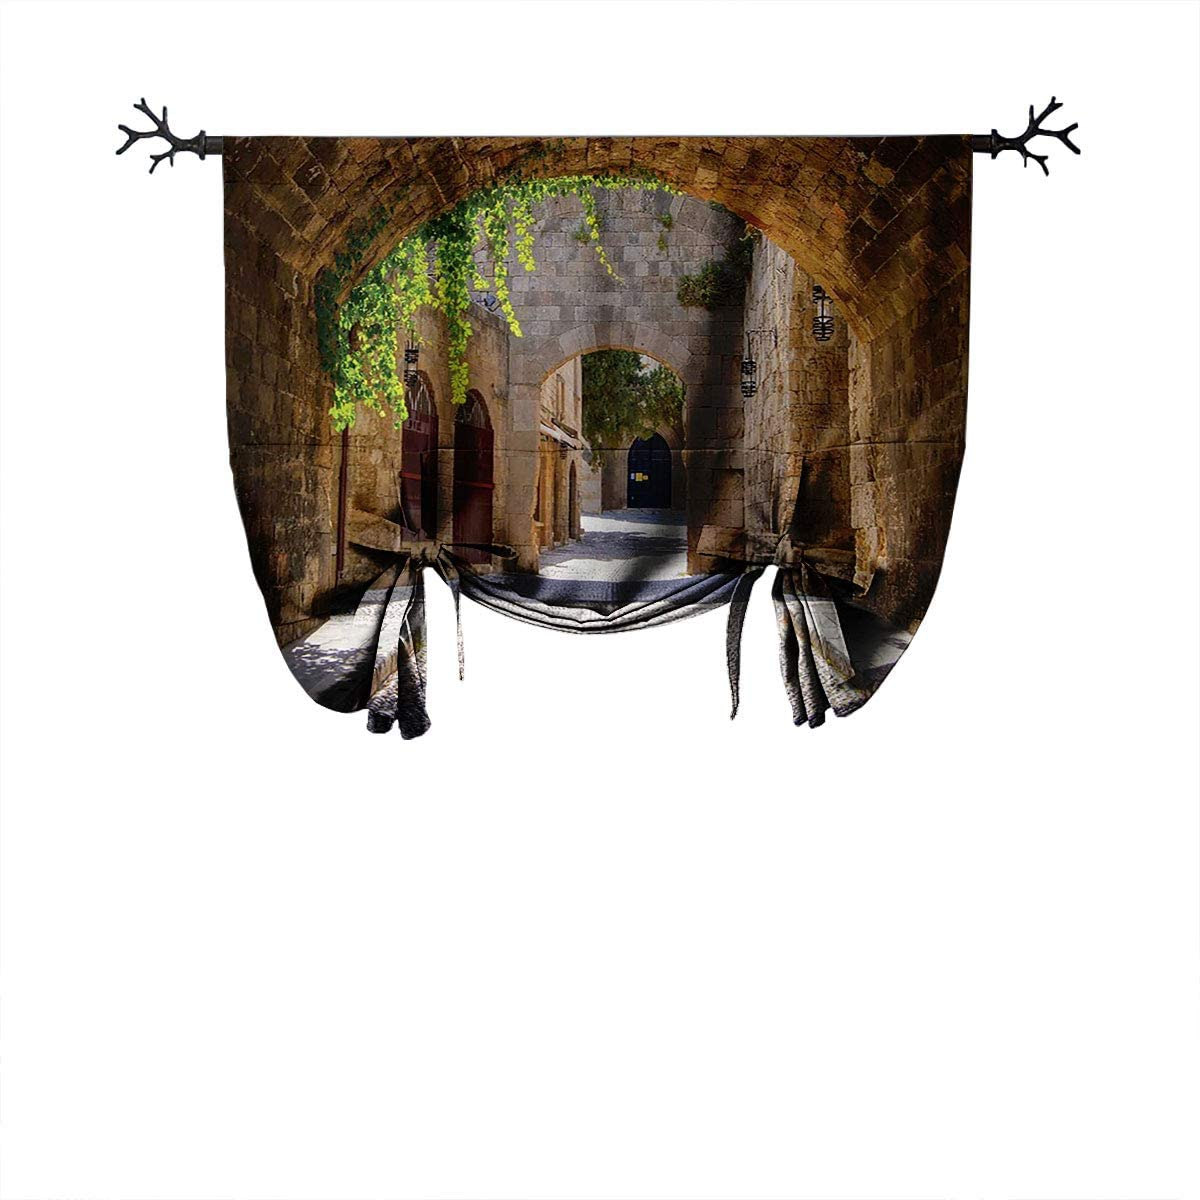 LanQiao Tuscan Decor Collection Insulated Roman Curtain Ancient Italian Street in Small Provincial Town of Tuscan Italy Europe Gift Curtain W24 xL55 Ivory Green Grey